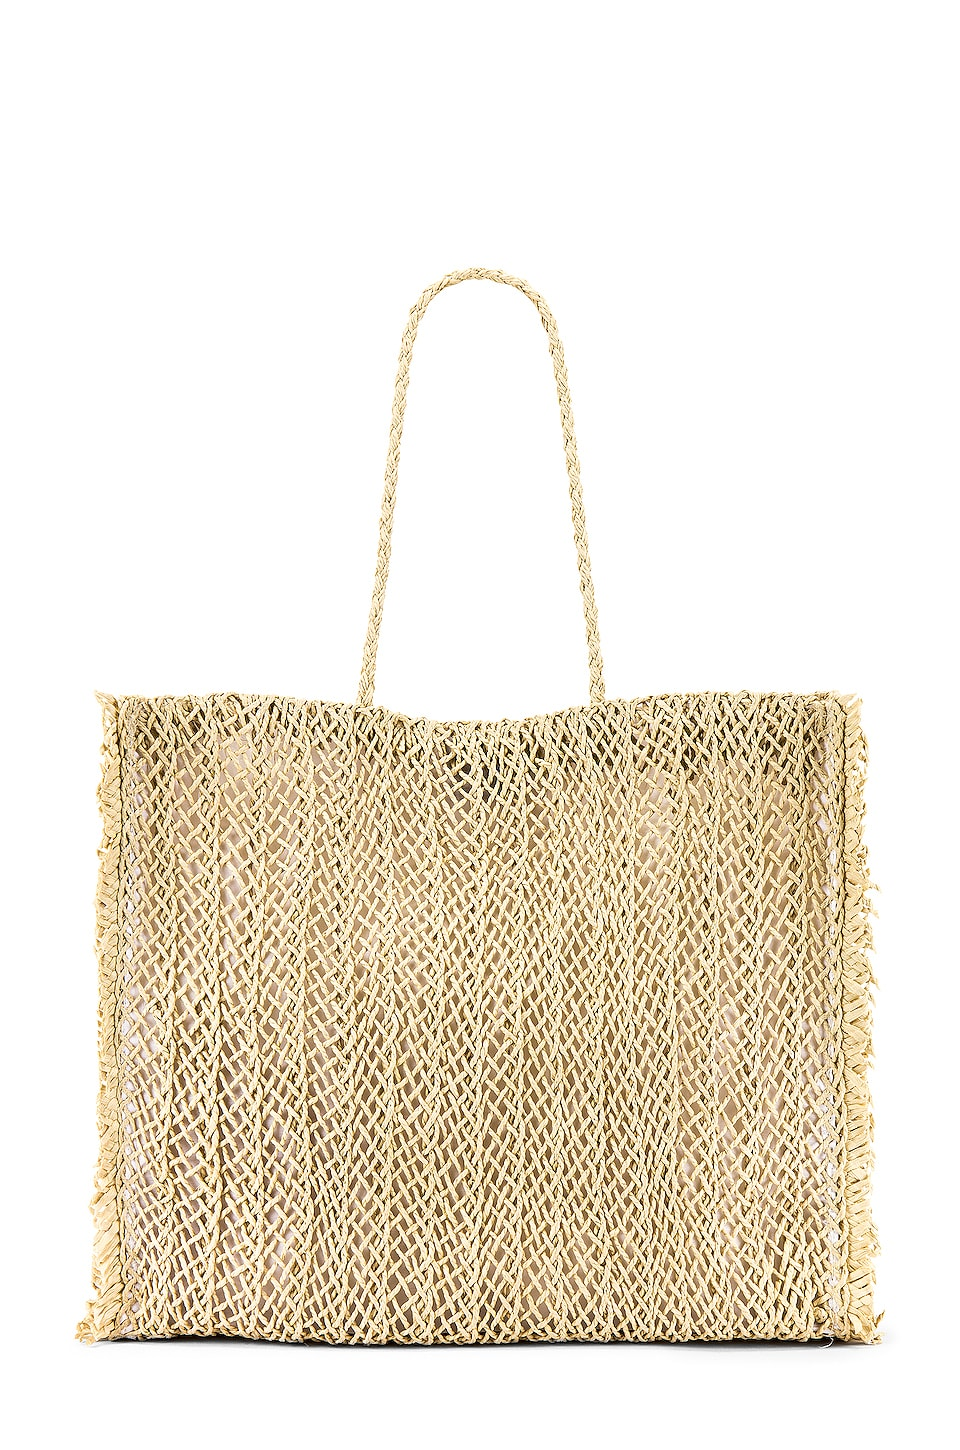 Seafolly Paper Crochet Bag in Natural